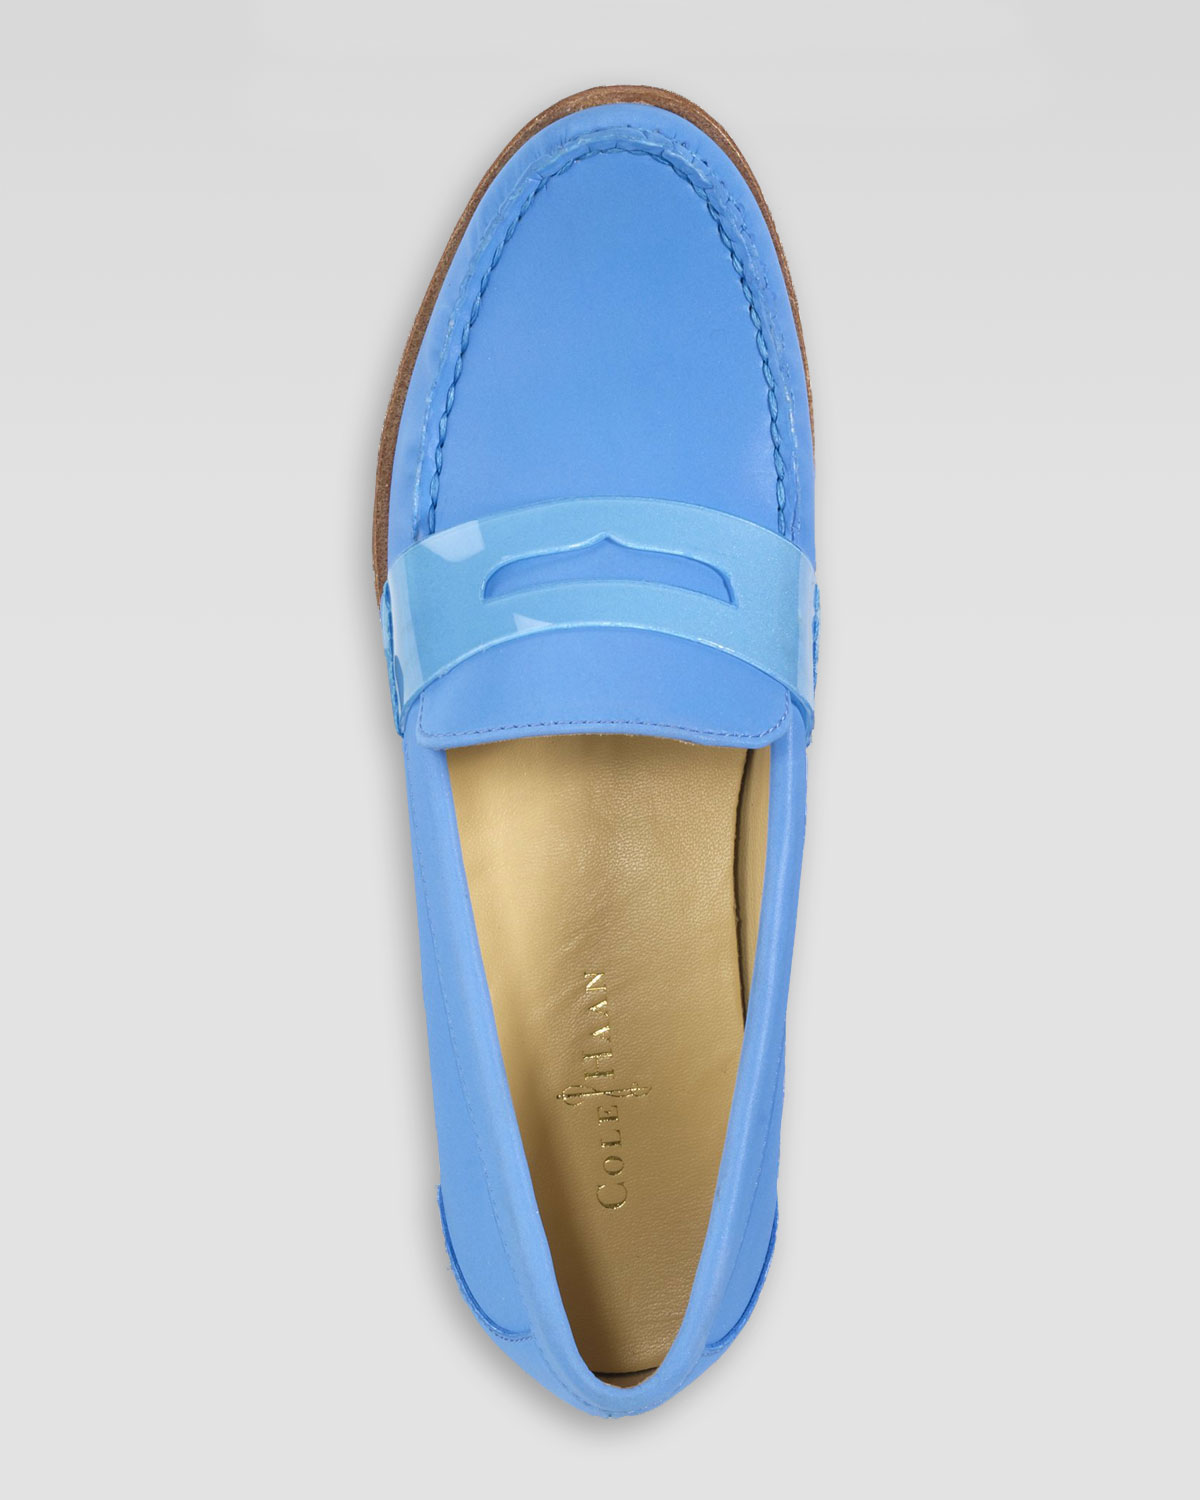 c187231235a Lyst - Cole Haan Air Monroe Suede Penny Loafer in Blue